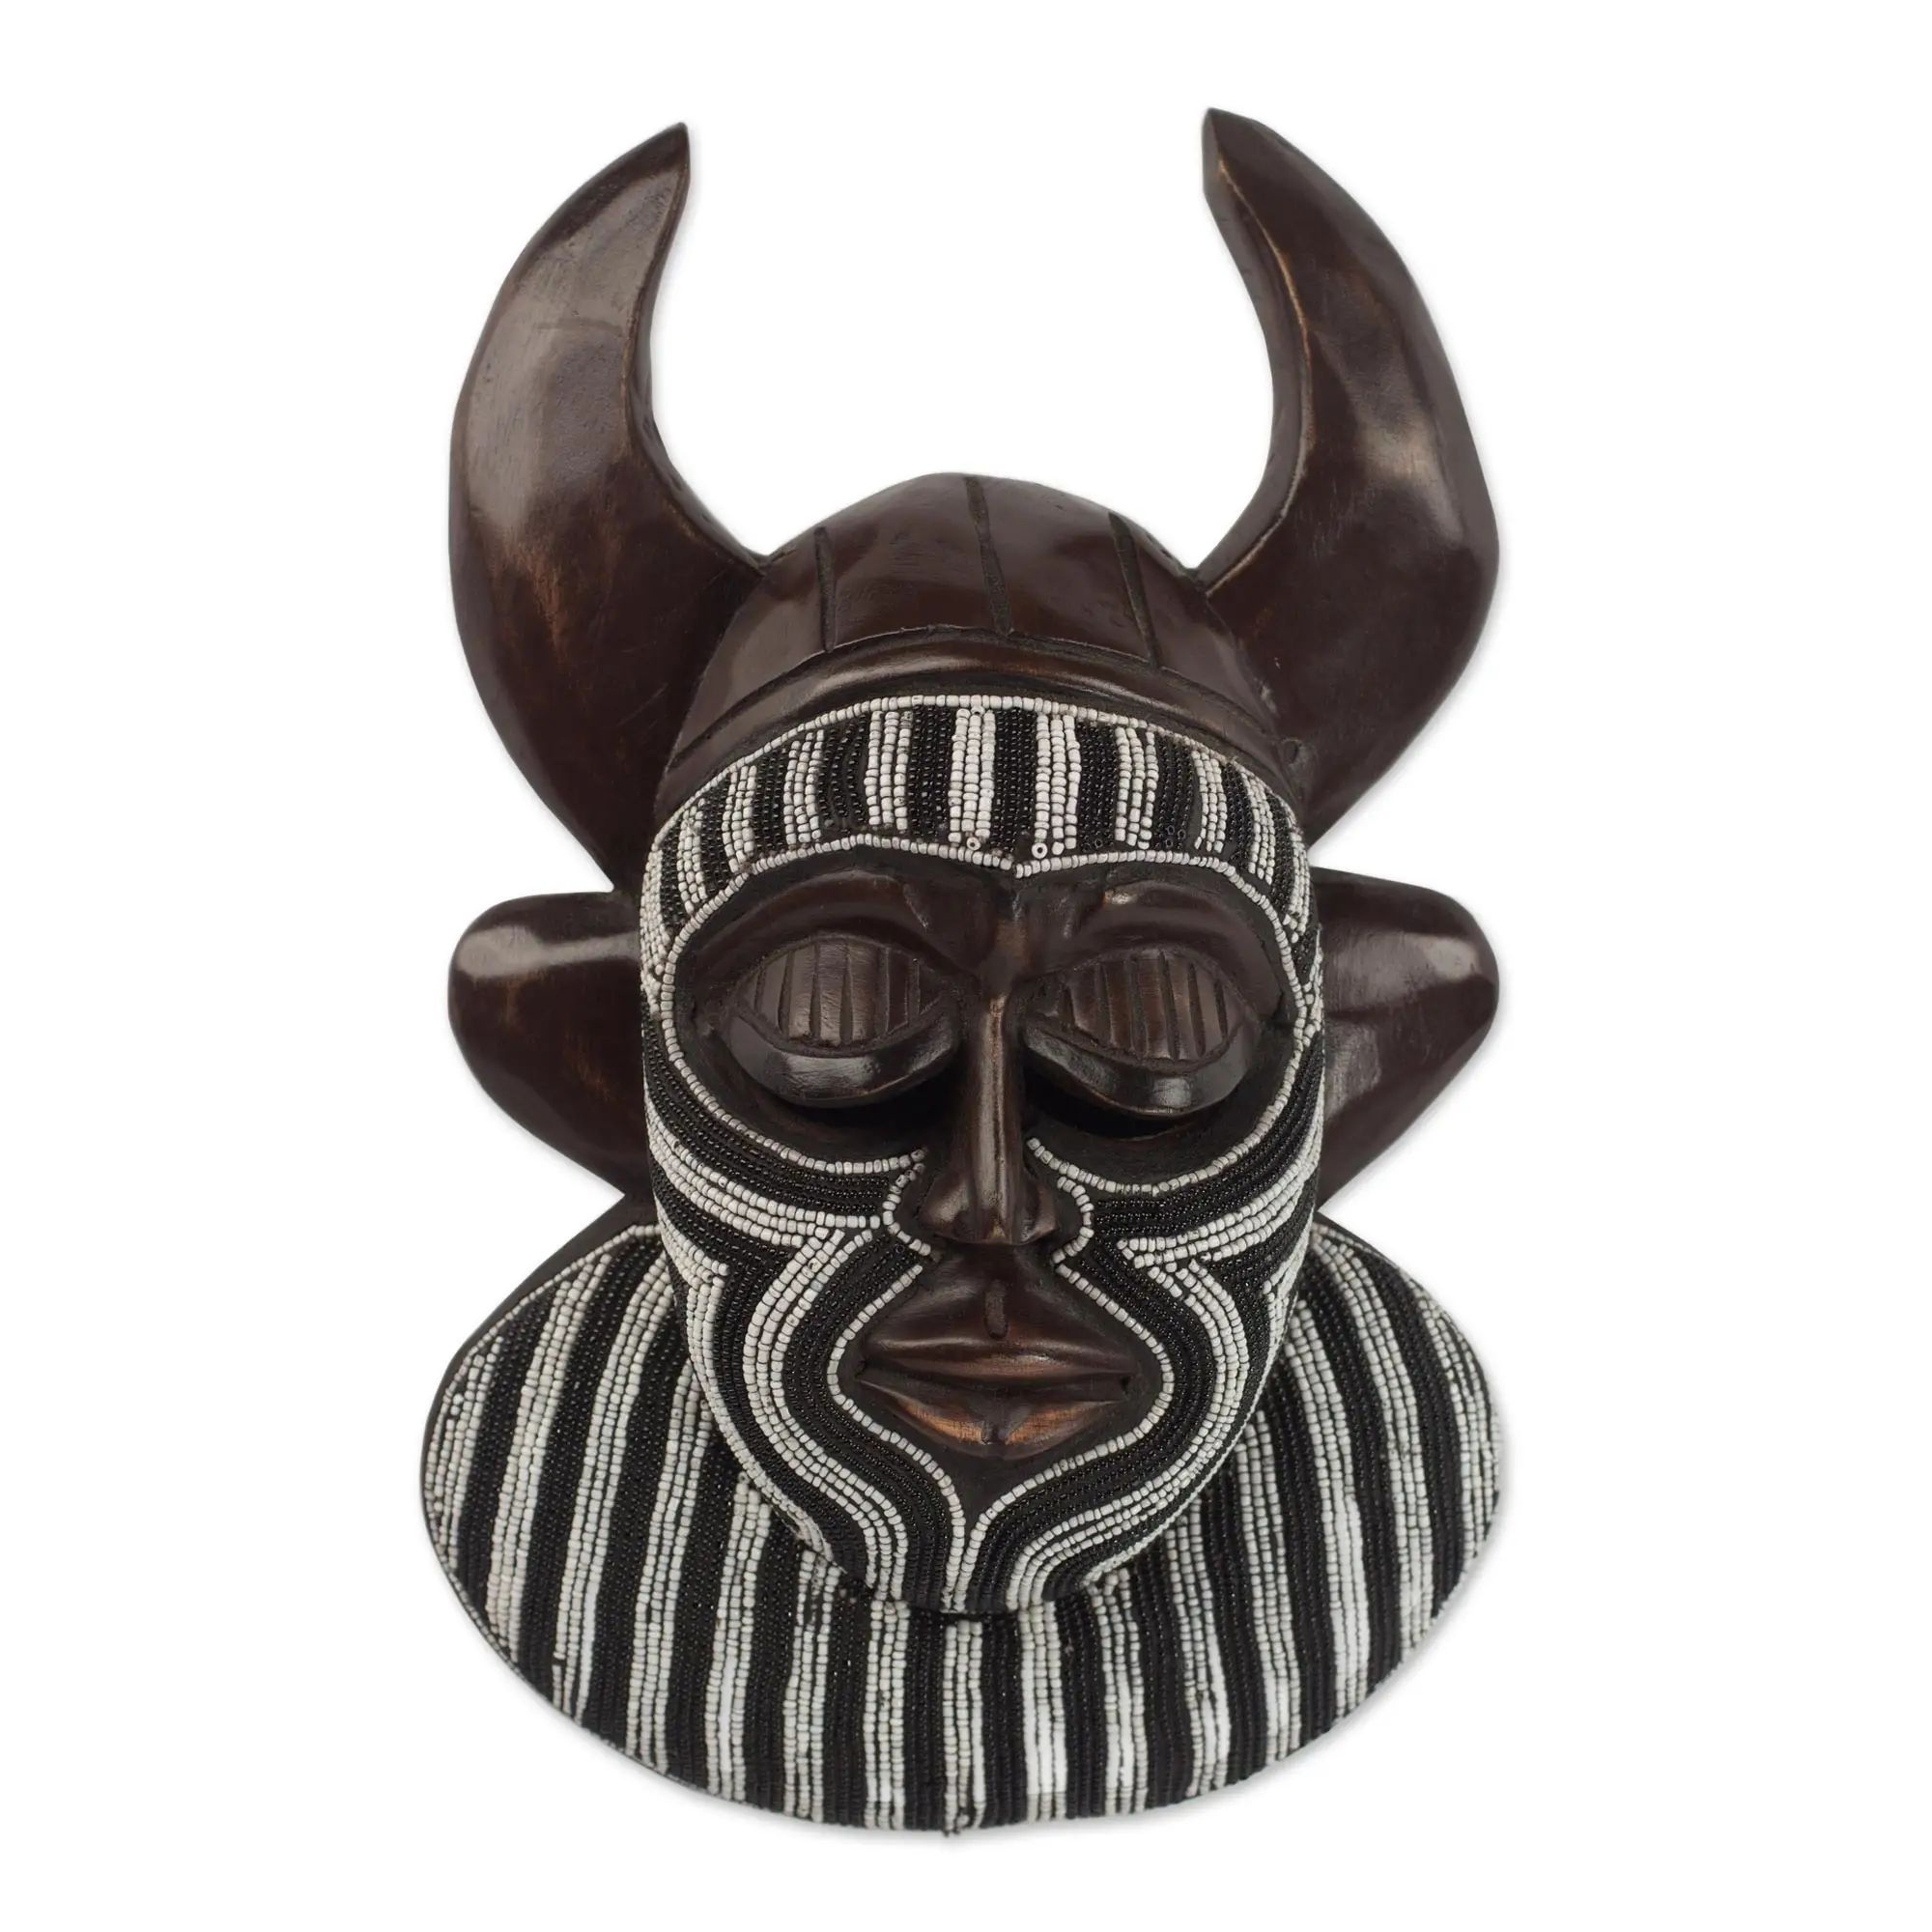 Authentic African Hand Made Kafo Horn Mask of Power by Awudu Saaed